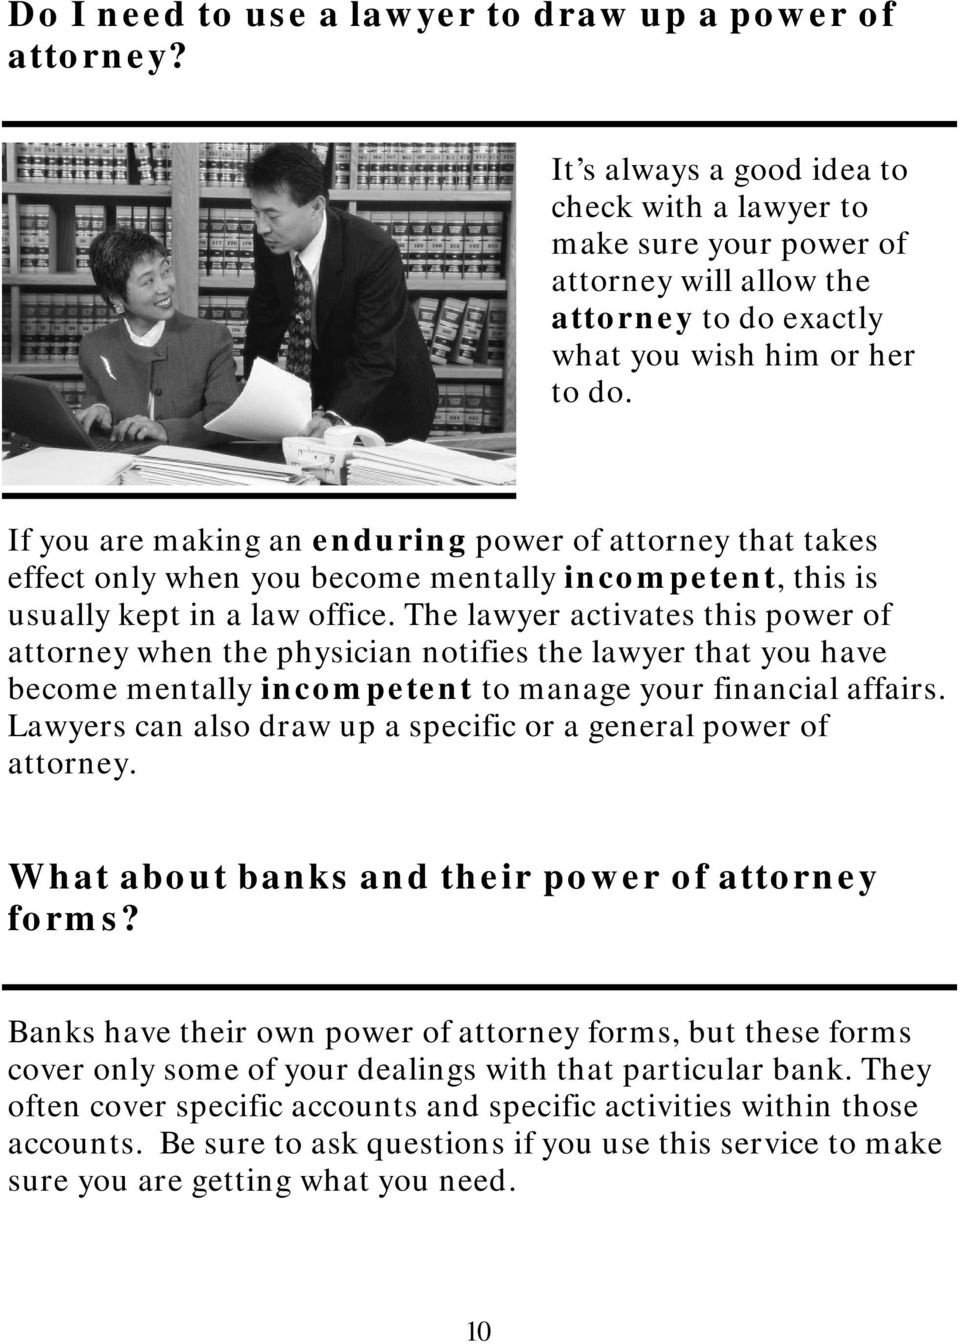 If you are making an enduring power of attorney that takes effect only when you become mentally incompetent, this is usually kept in a law office.